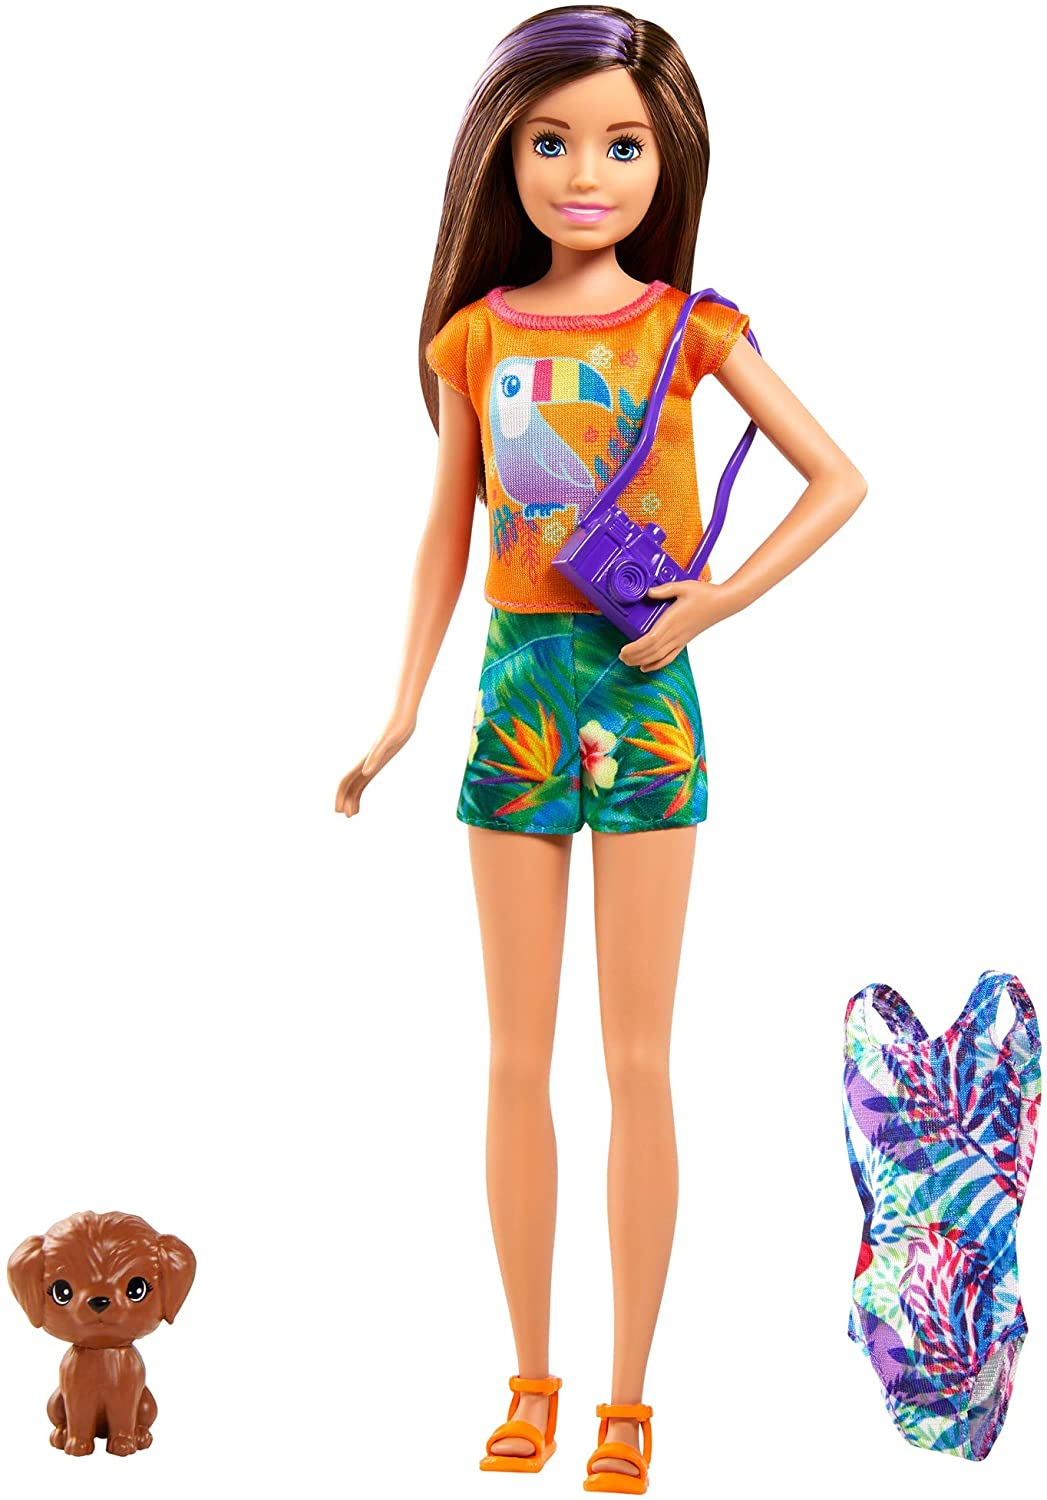 Barbie Chelsea The Lost Birthday Doll and Accessories (Mattel GRT88)